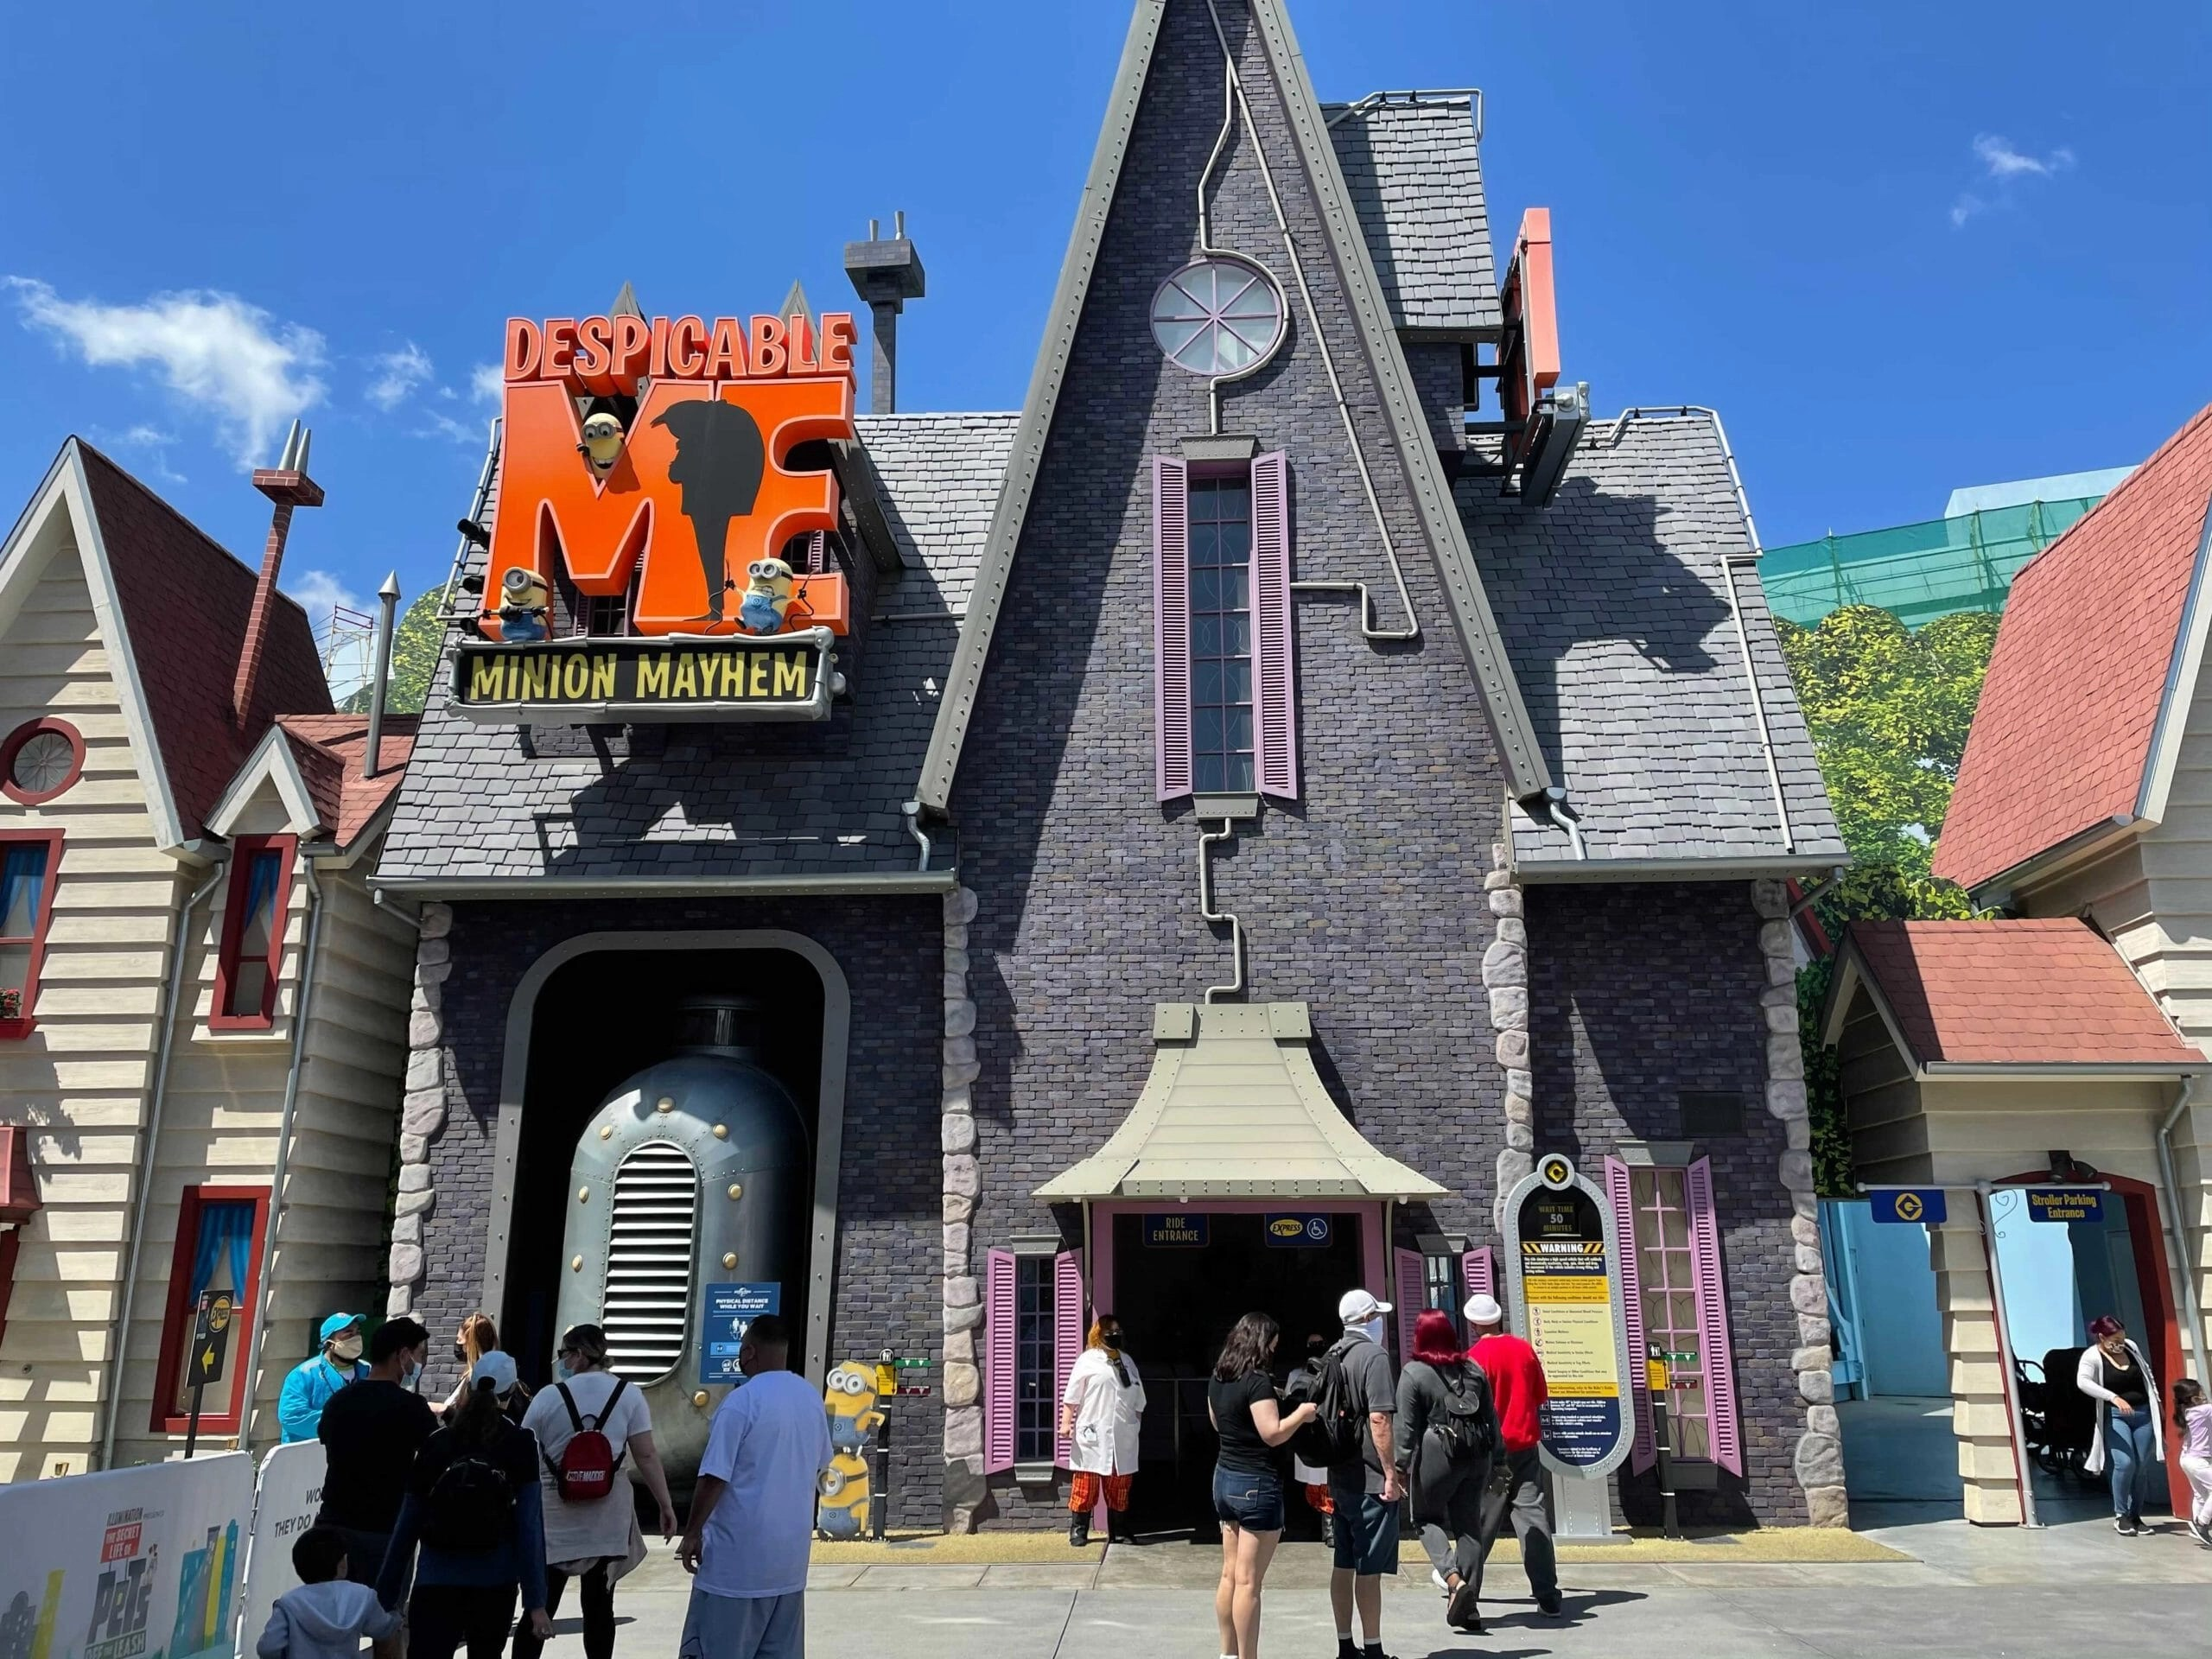 PHOTOS, VIDEO: Despicable Me – Minion Mayhem Reopens at Universal Studios Hollywood